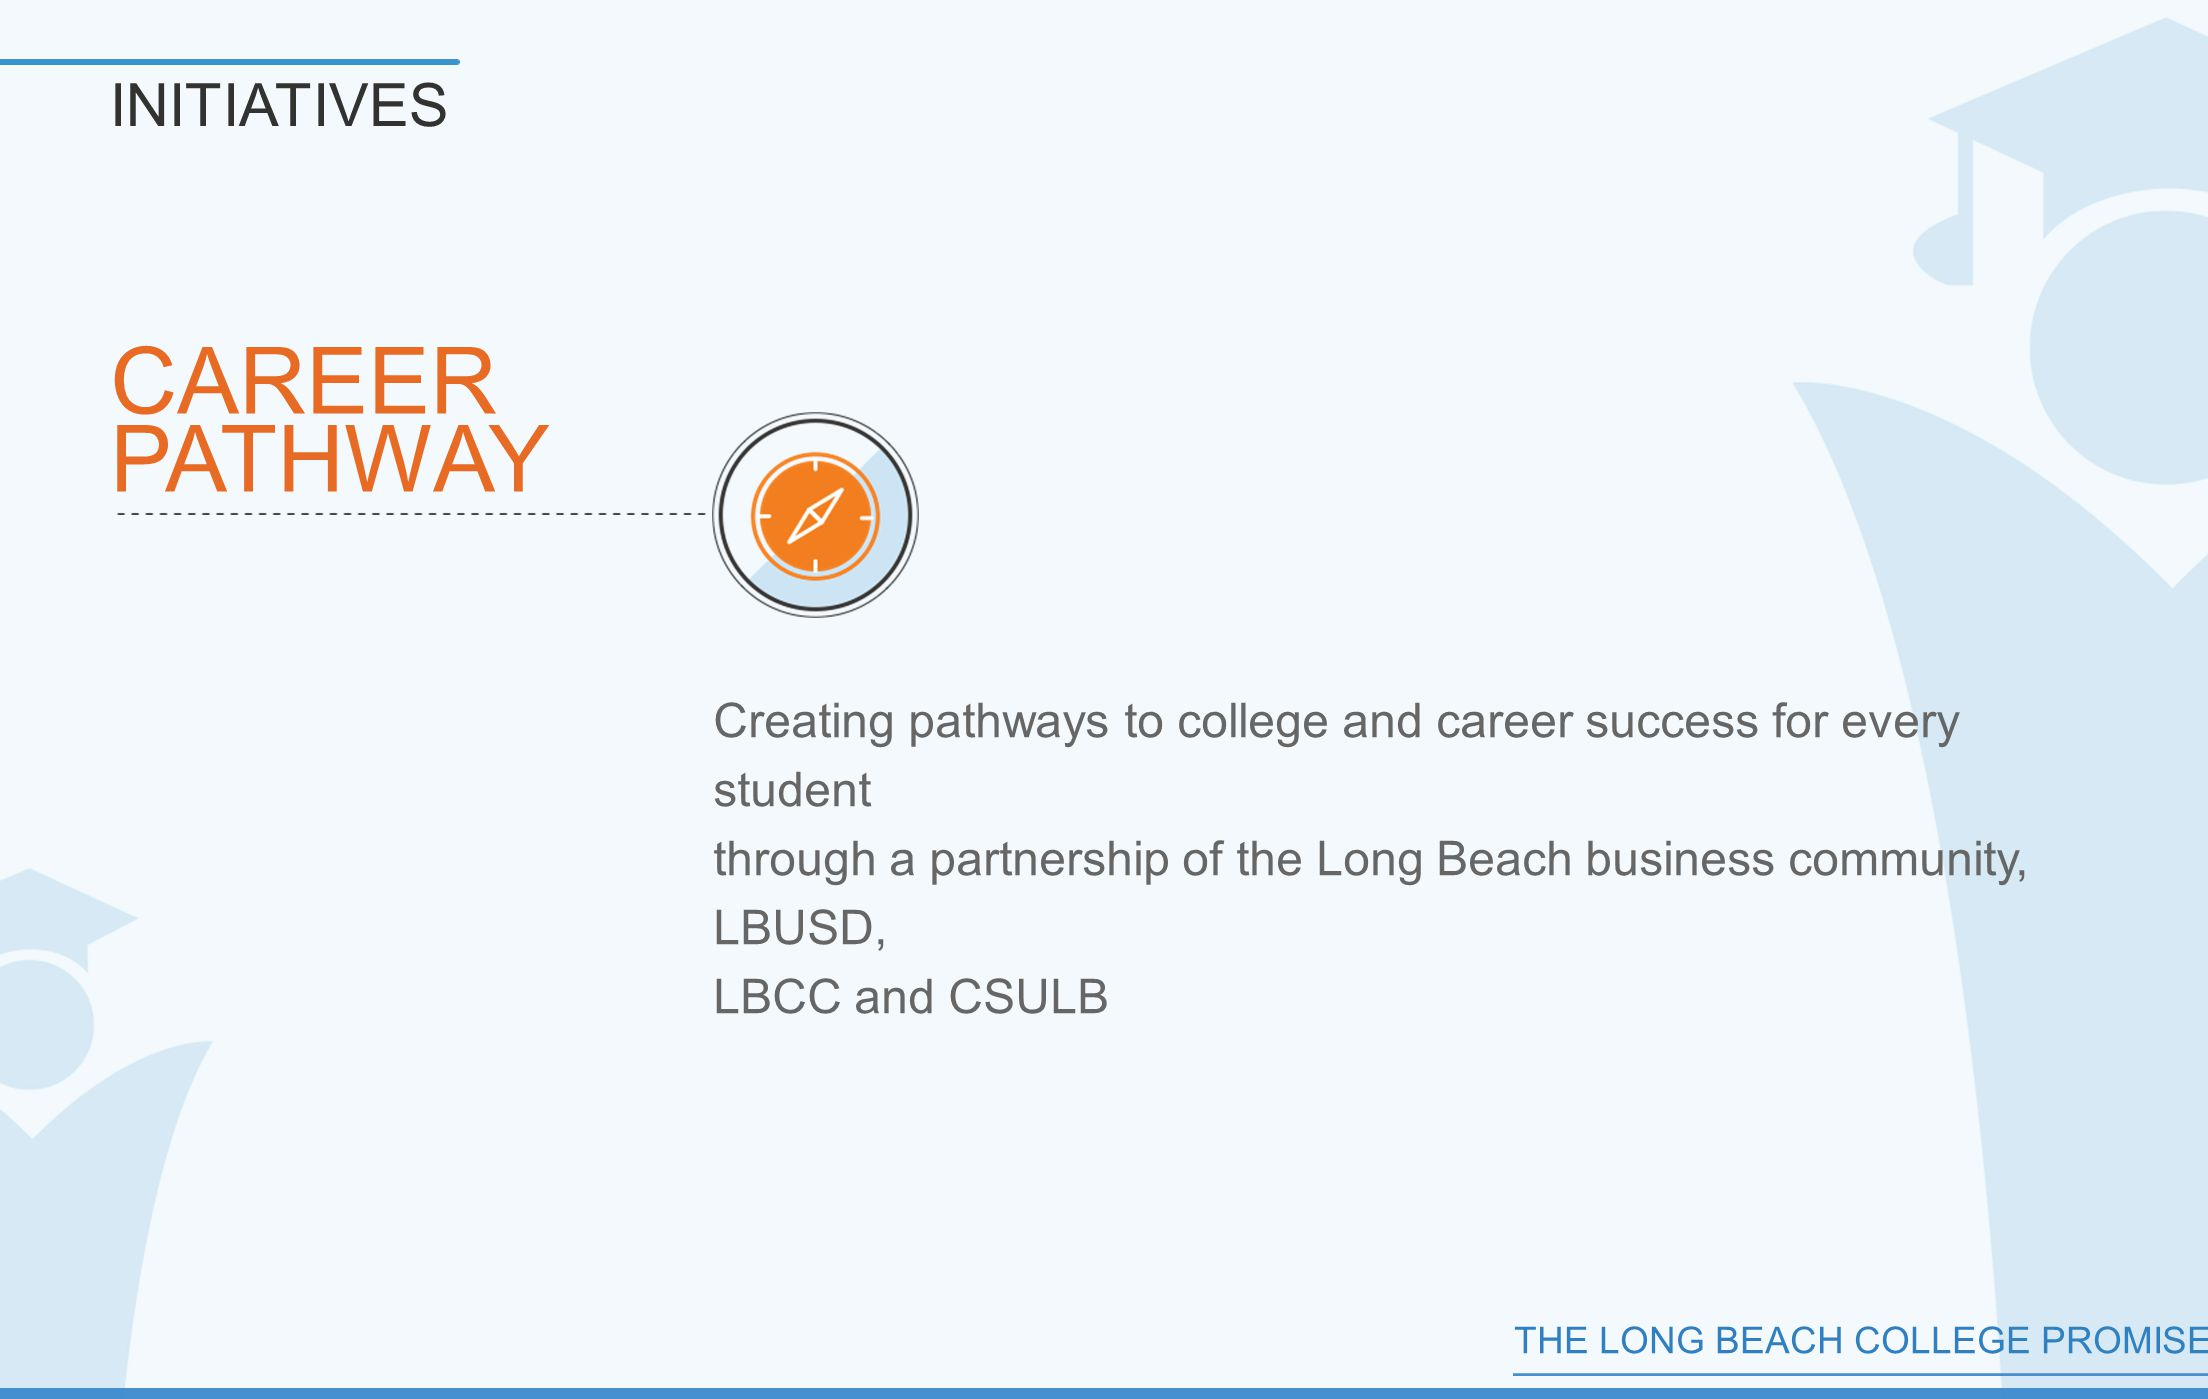 THE LONG BEACH COLLEGE PROMISE CAREER PATHWAY INITIATIVES Creating pathways to college and career success for every student through a partnership of the Long Beach business community, LBUSD, LBCC and CSULB